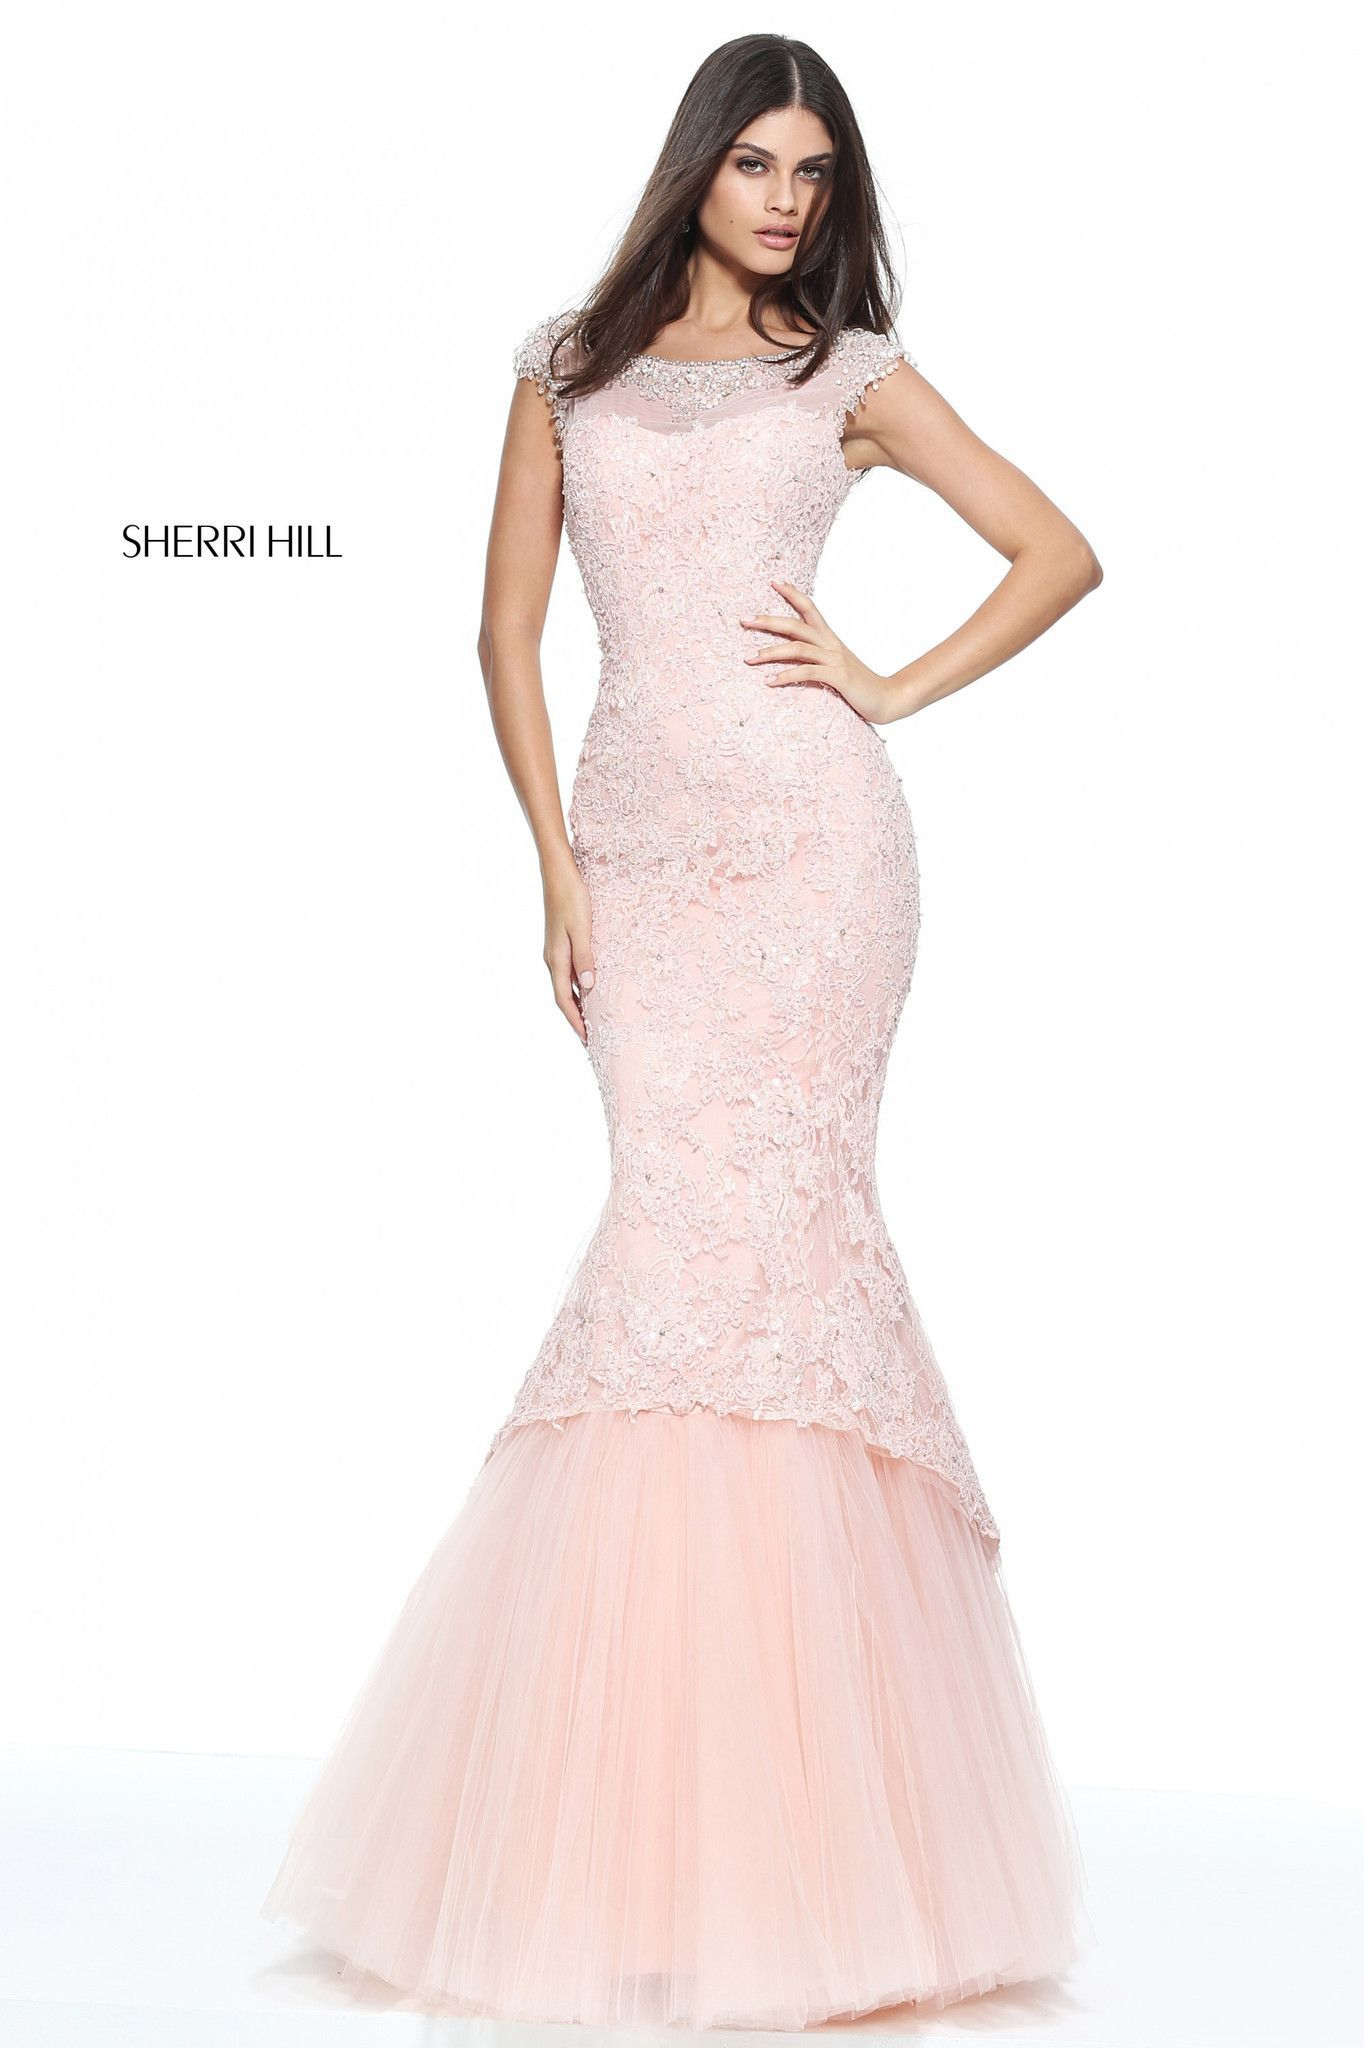 Sherri hill drop and ships